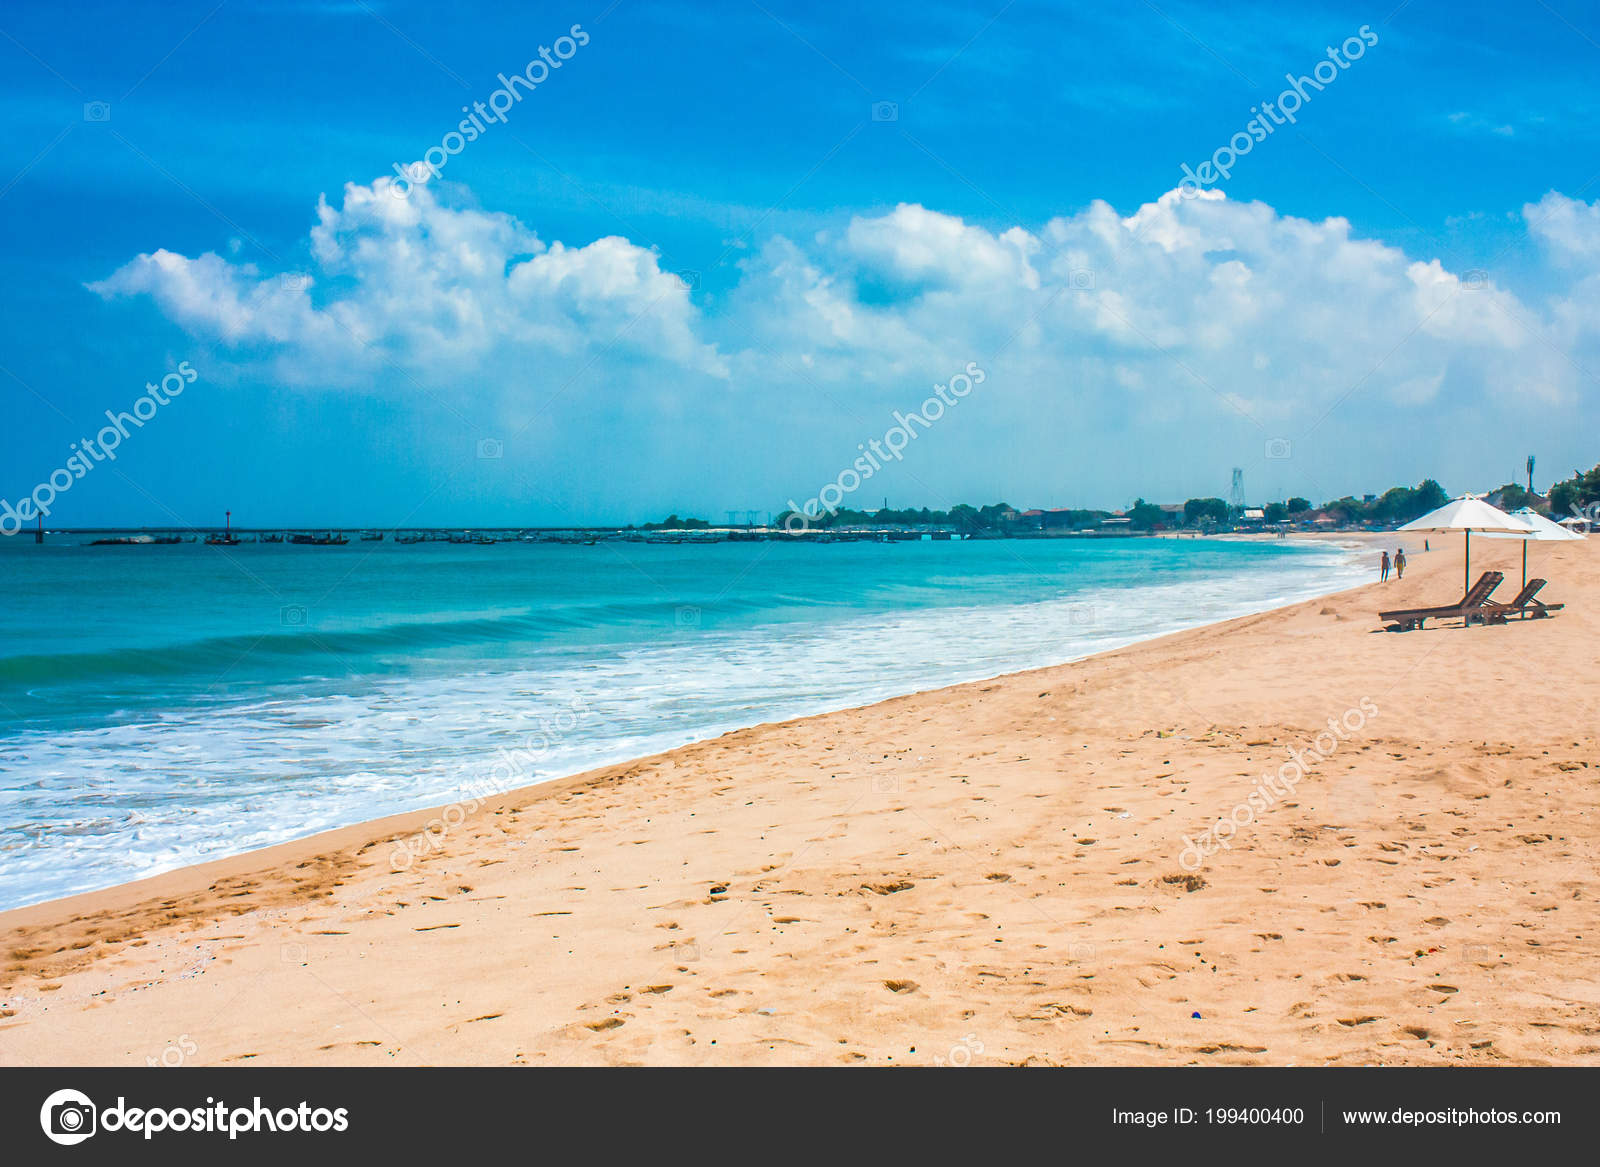 Jimbaran Beach Bali Indonesia Stock Photo C Aleksandrbazinlt Gmail